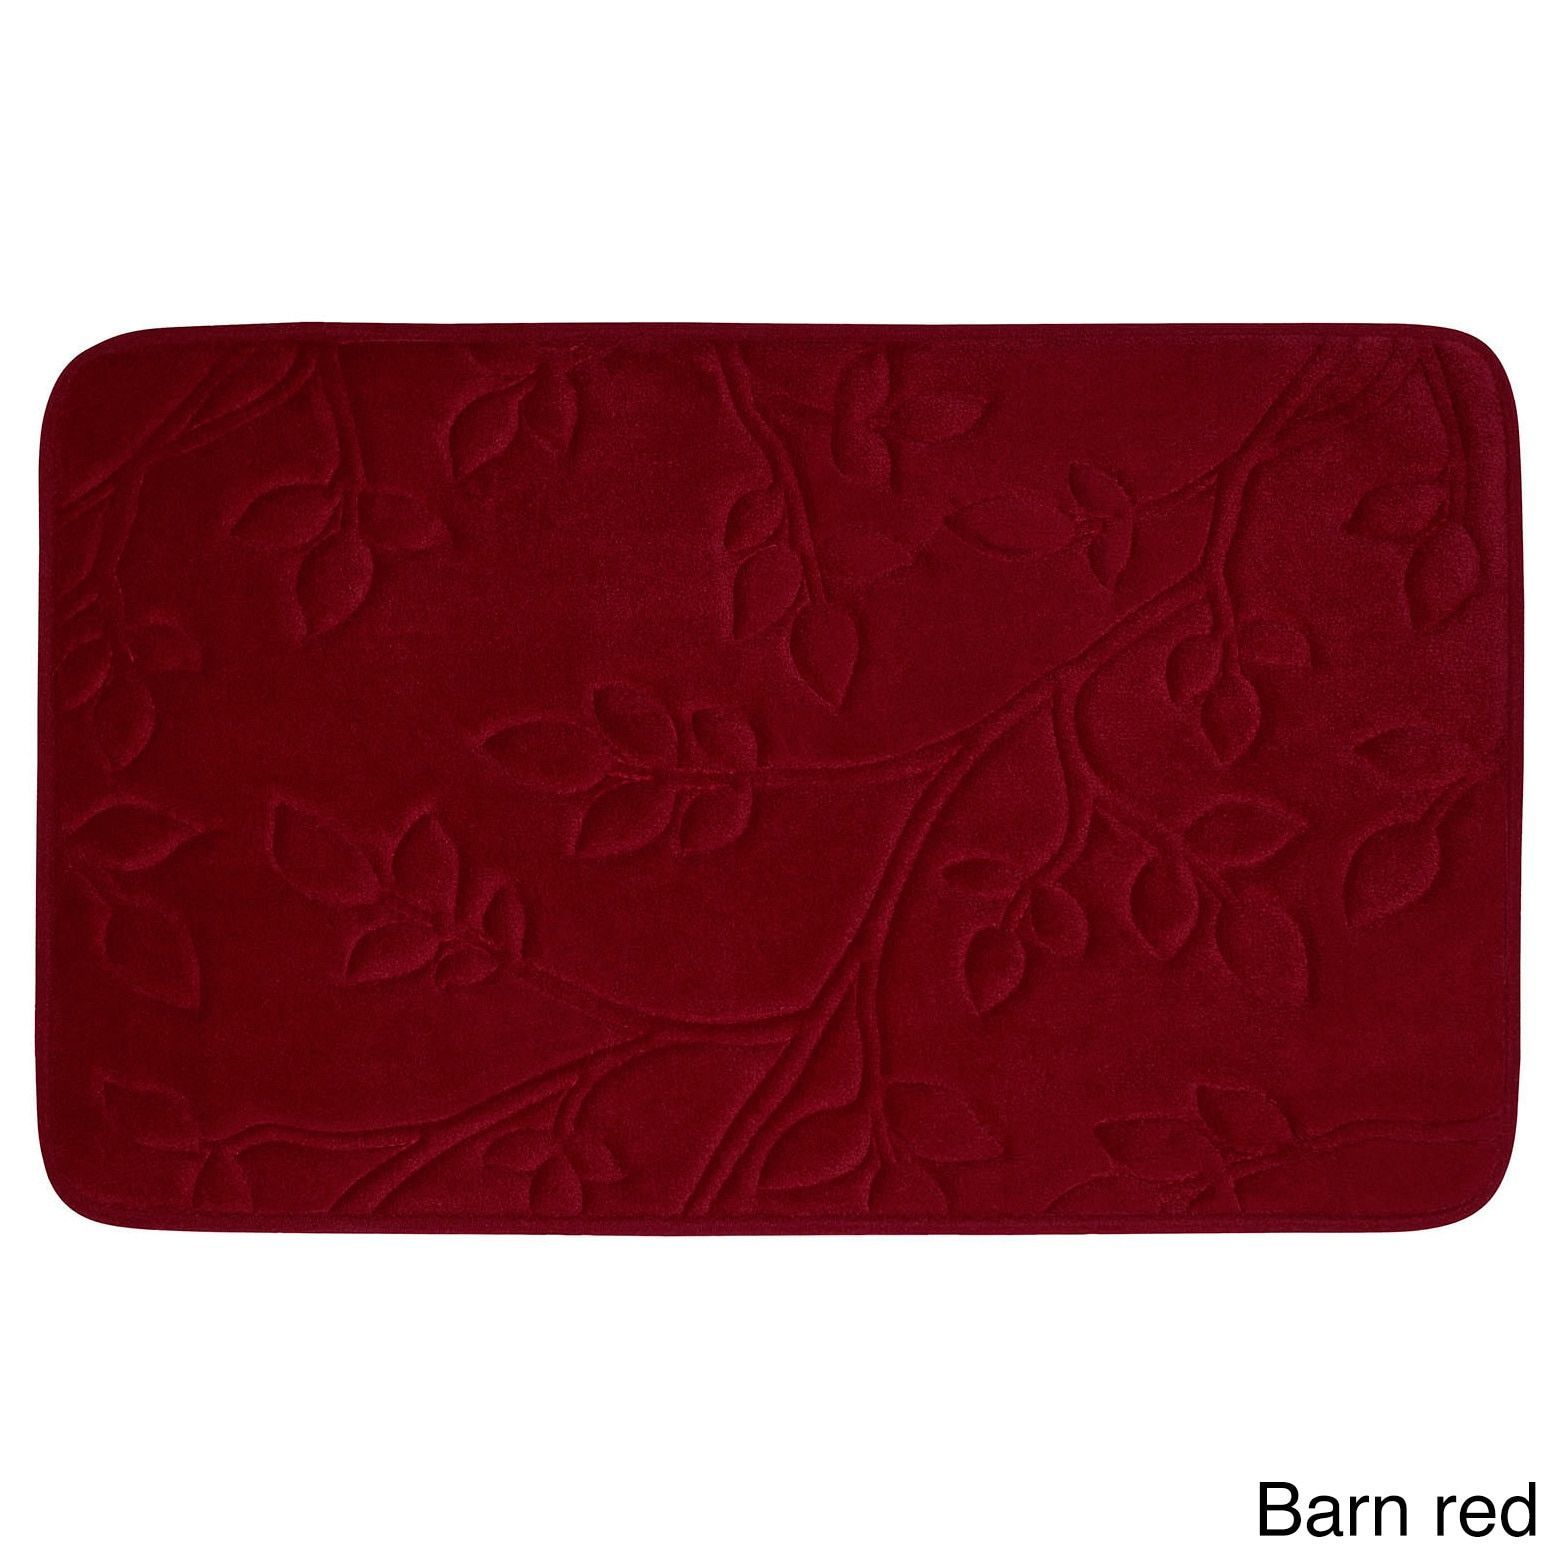 Spring Leaves Micro Plush 17 x 24-inch Bath Mat with BounceComfort Technology